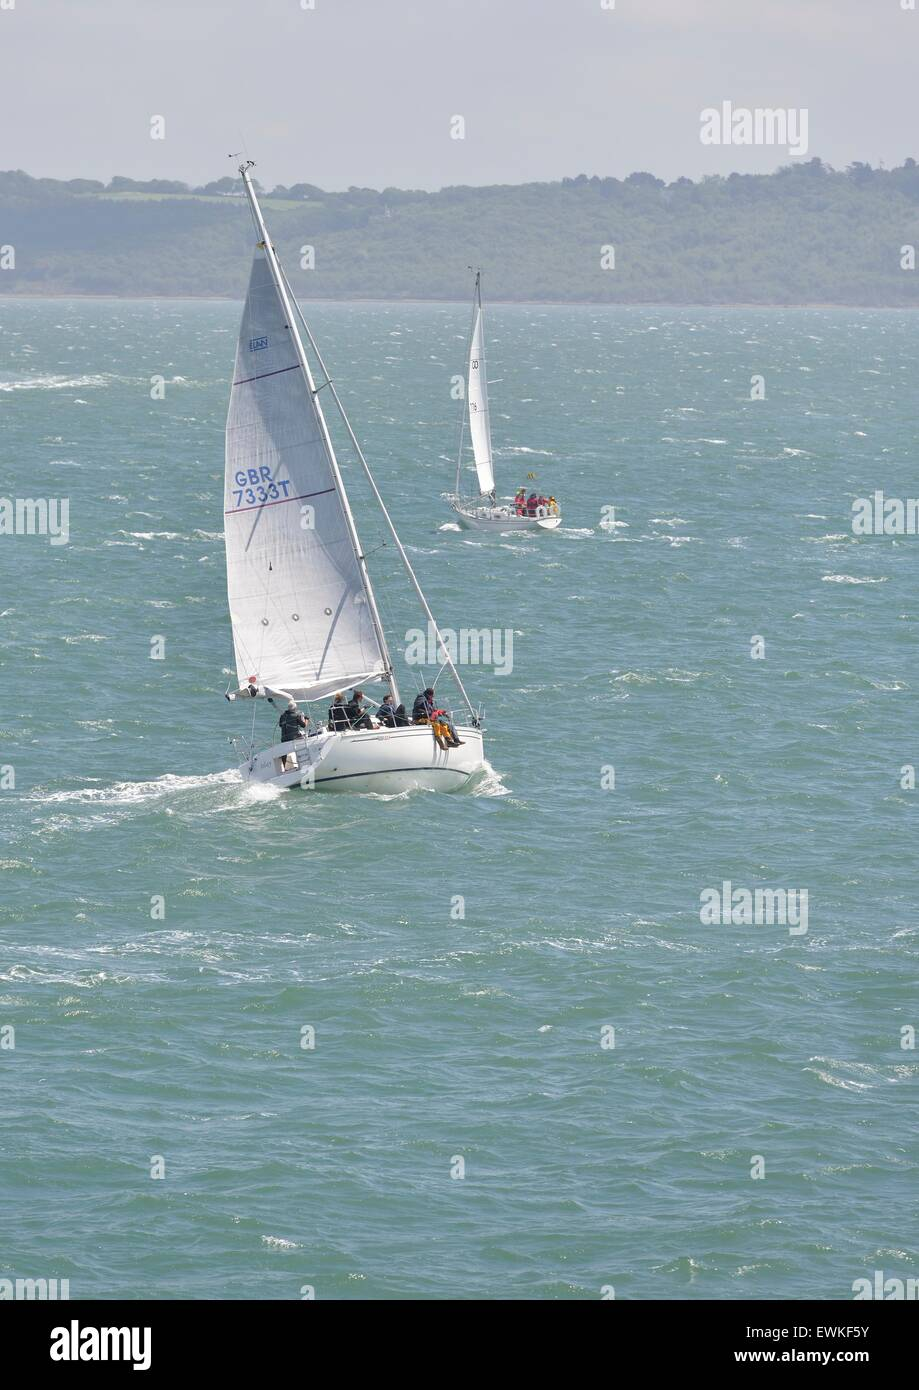 Sailing yachts under sail on the Solent, England - Stock Image